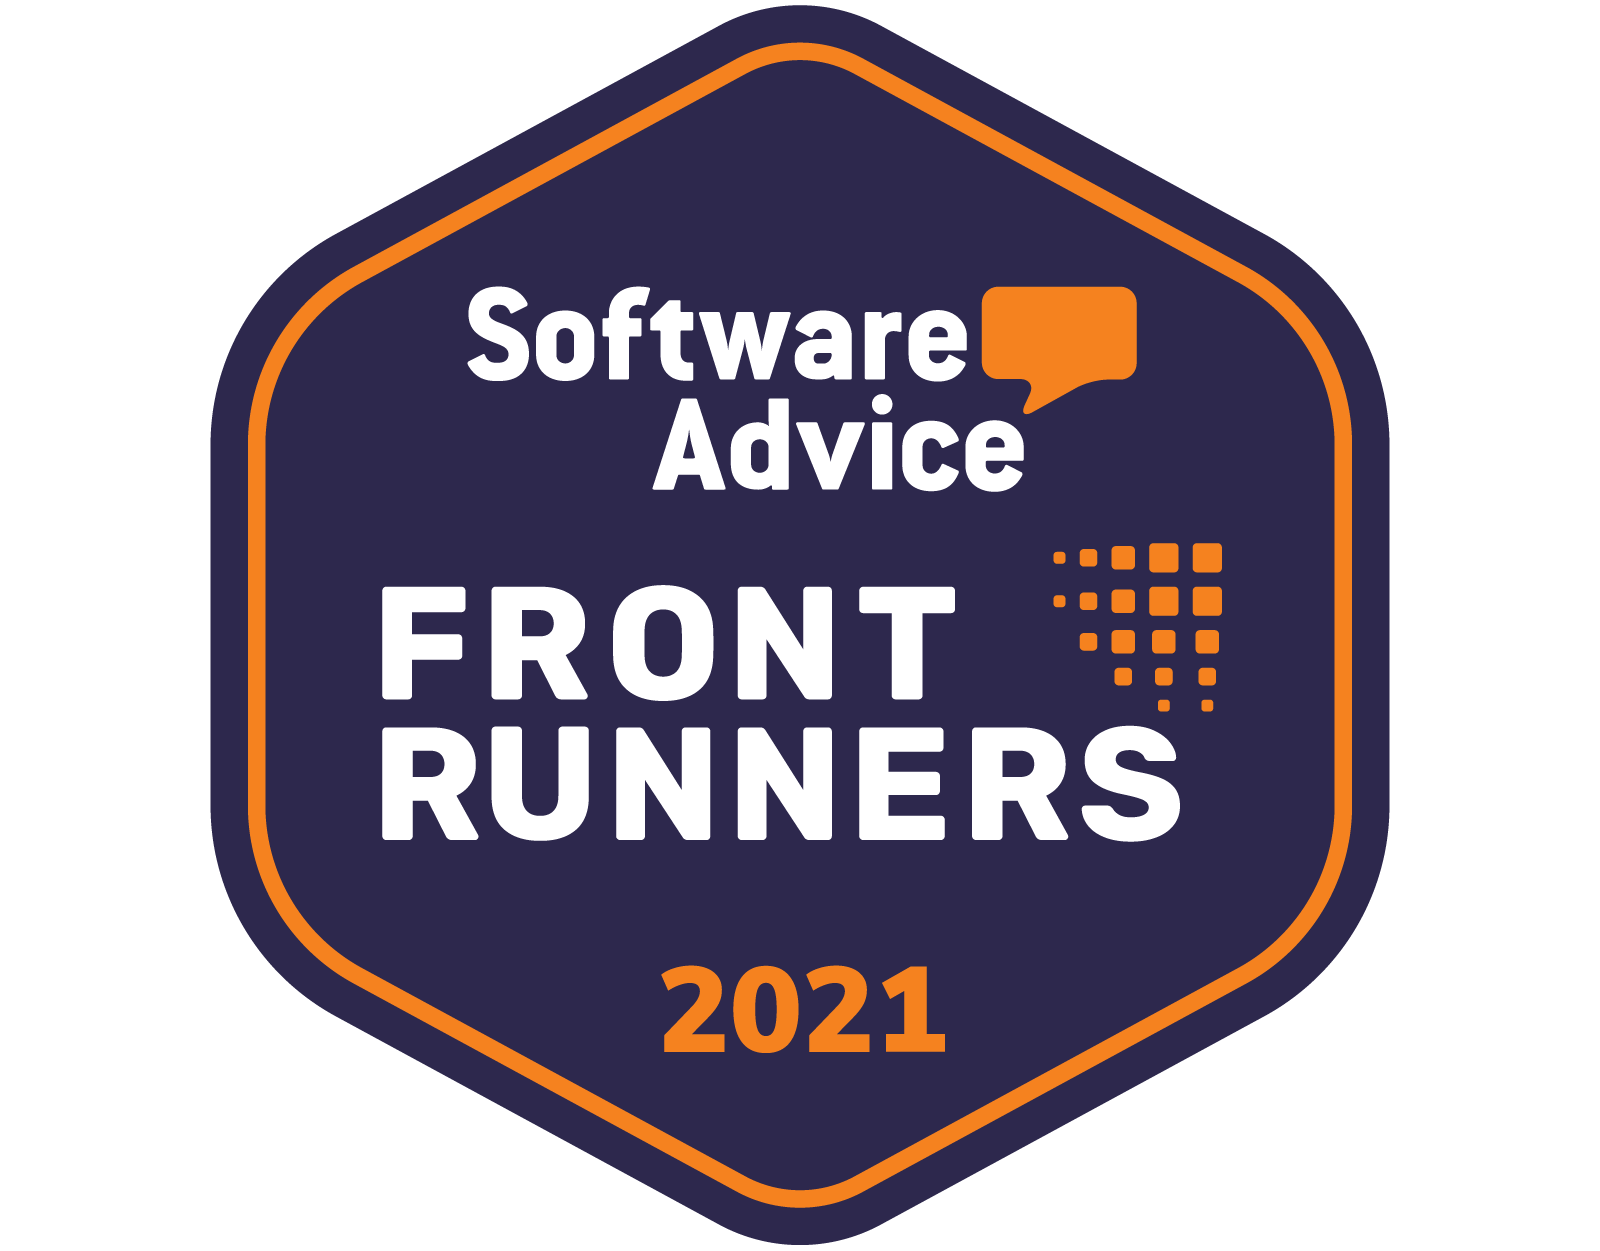 Software Advice Frontrunners for Accounting Jan-21